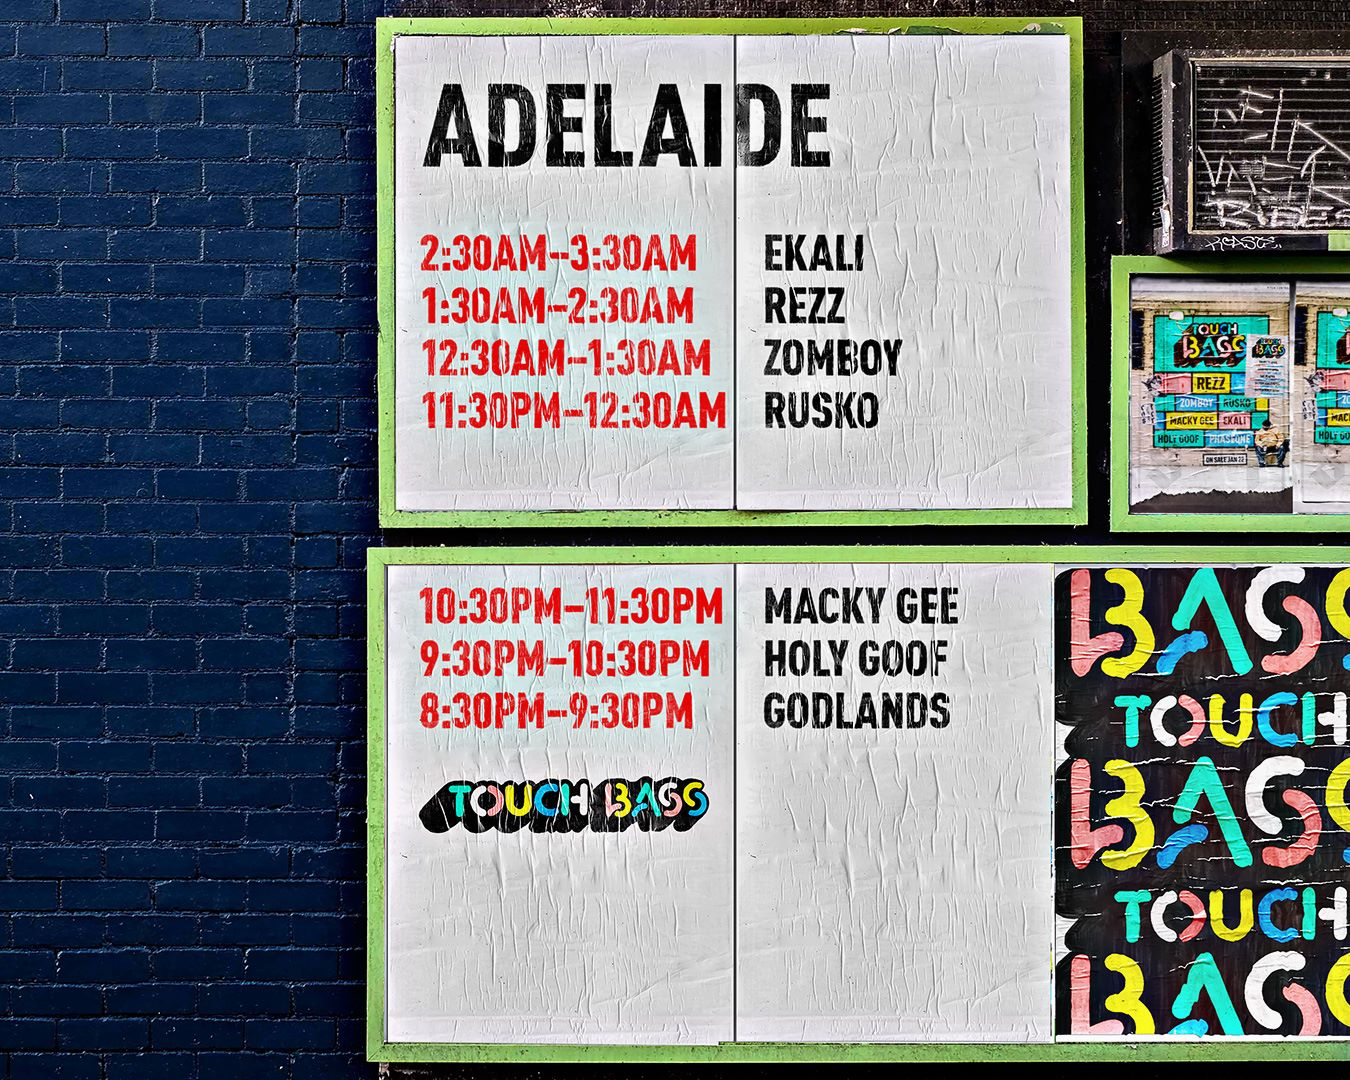 touch-bass-2019-set-times-adelaide